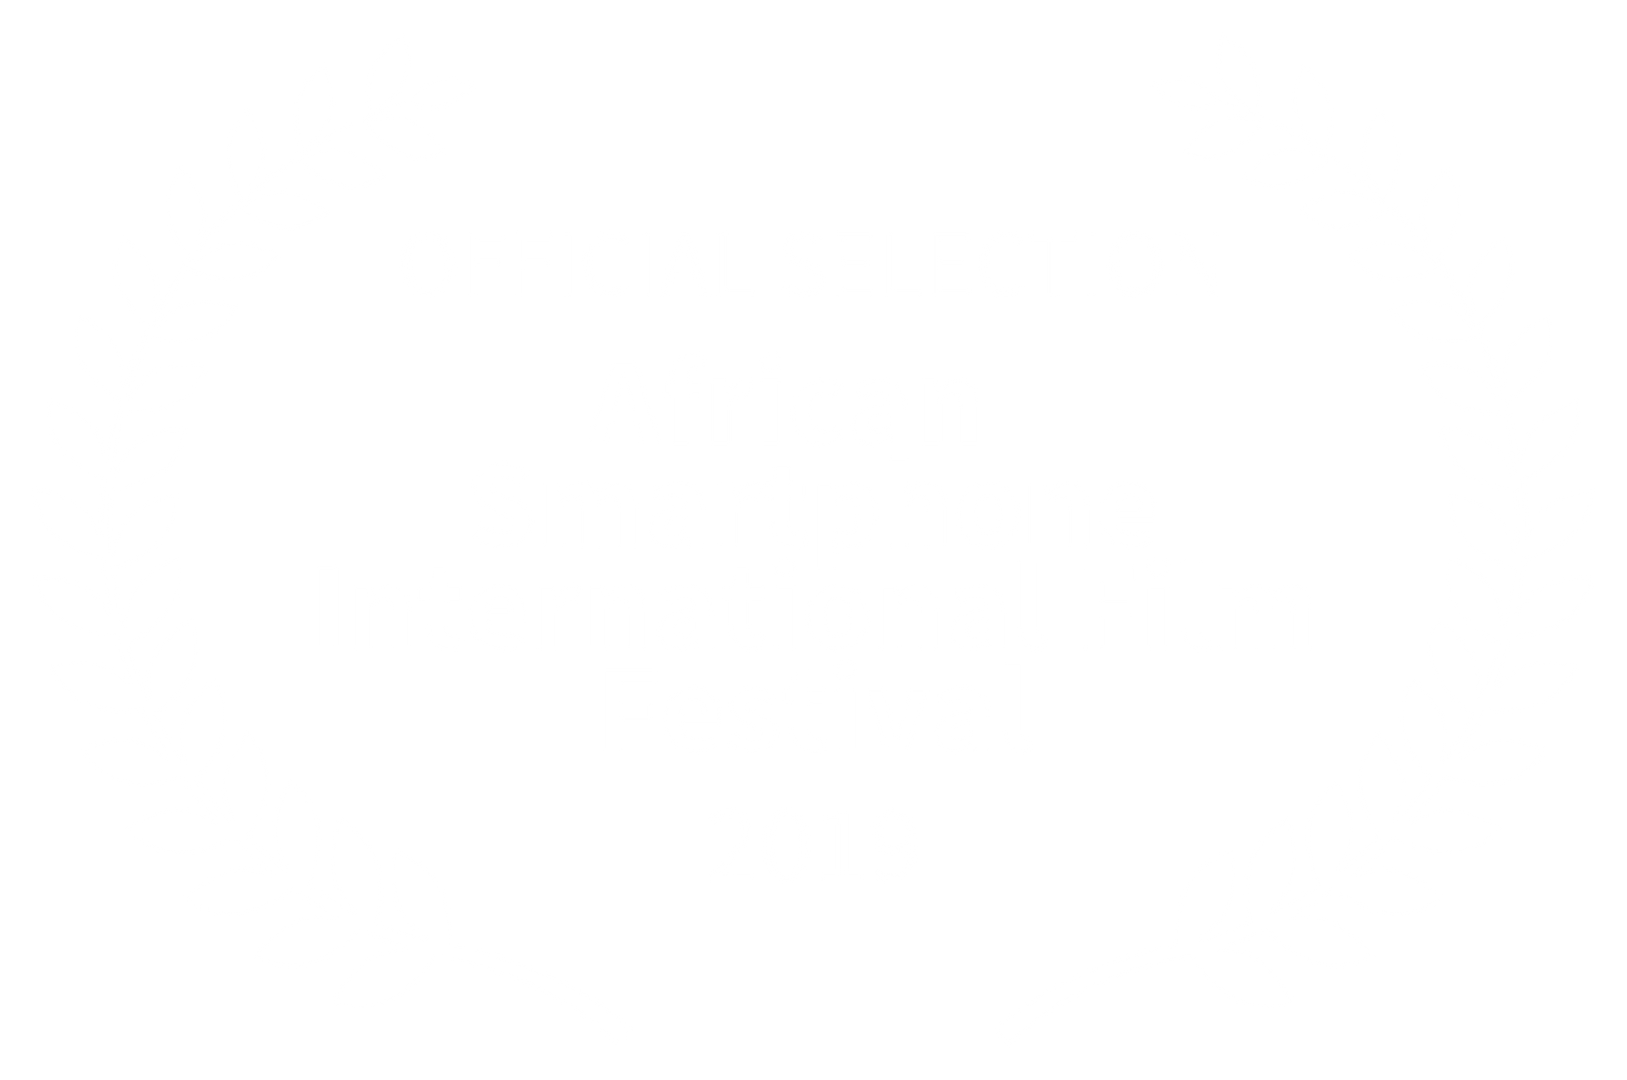 OFFICIAL SELECTION - African   Smartphon